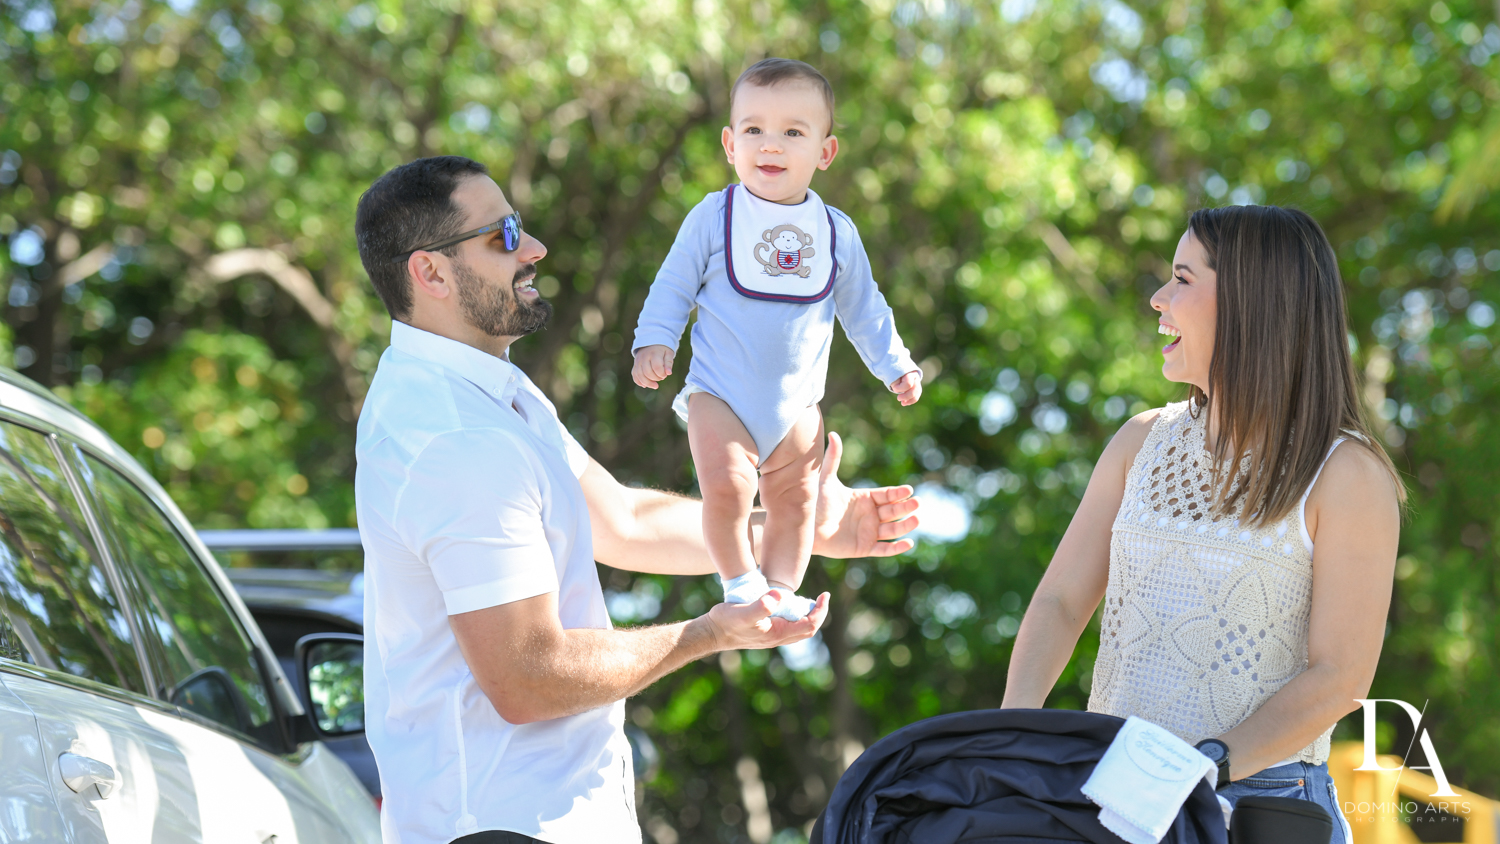 FUN BABY PICTURES AT Urban baby Photo Session in Coral Gables by Domino Arts Photography